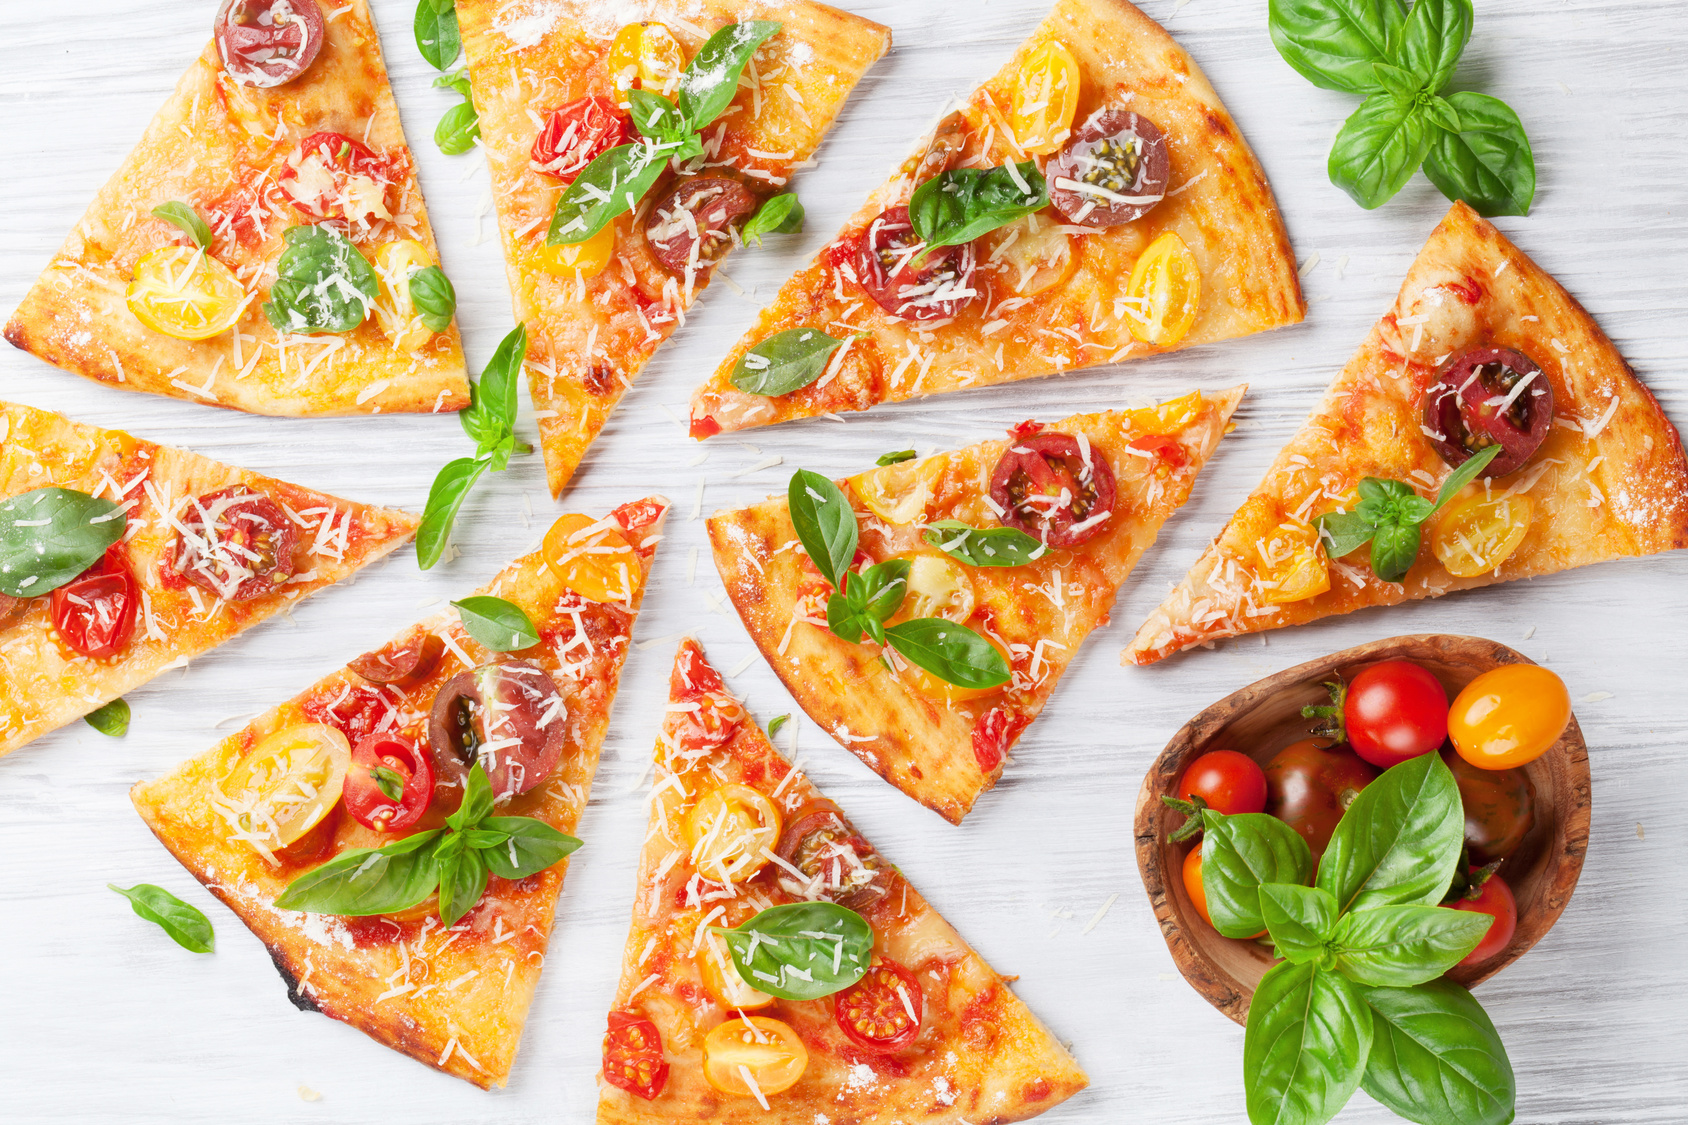 Feature-pizza_122054934_M.jpg